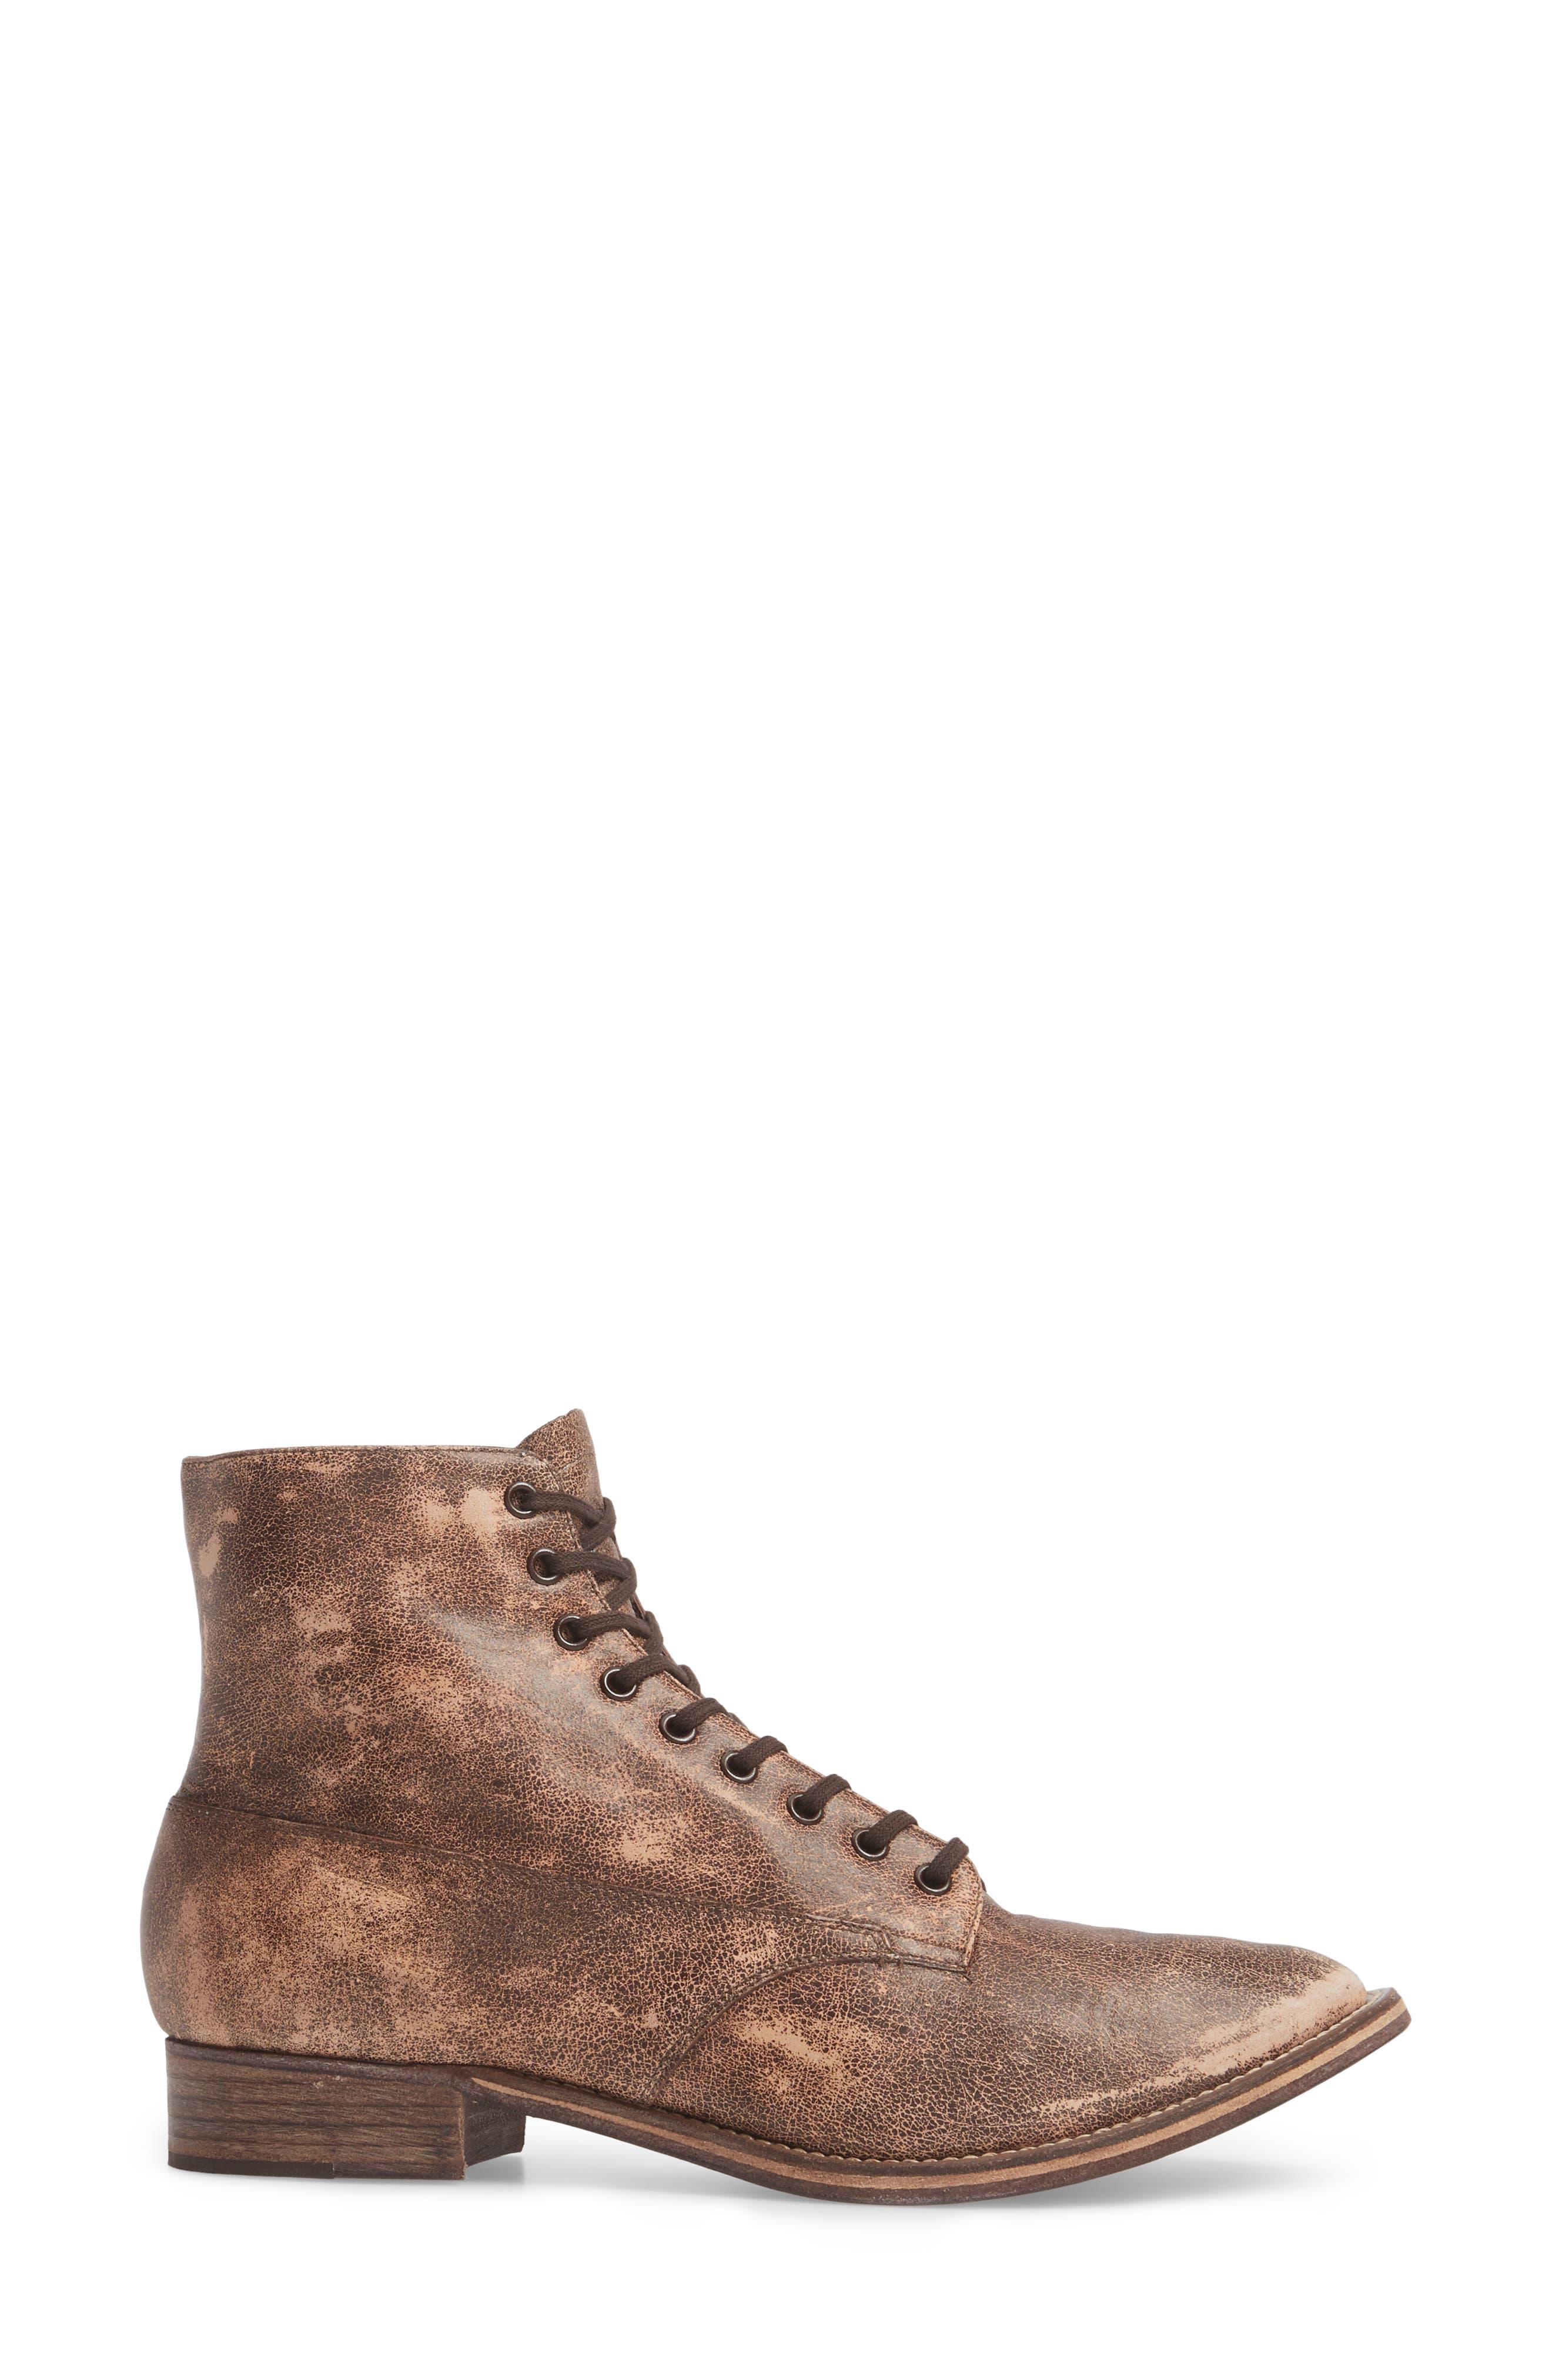 Boxcar Lace-Up Boot,                             Alternate thumbnail 3, color,                             Cordovan